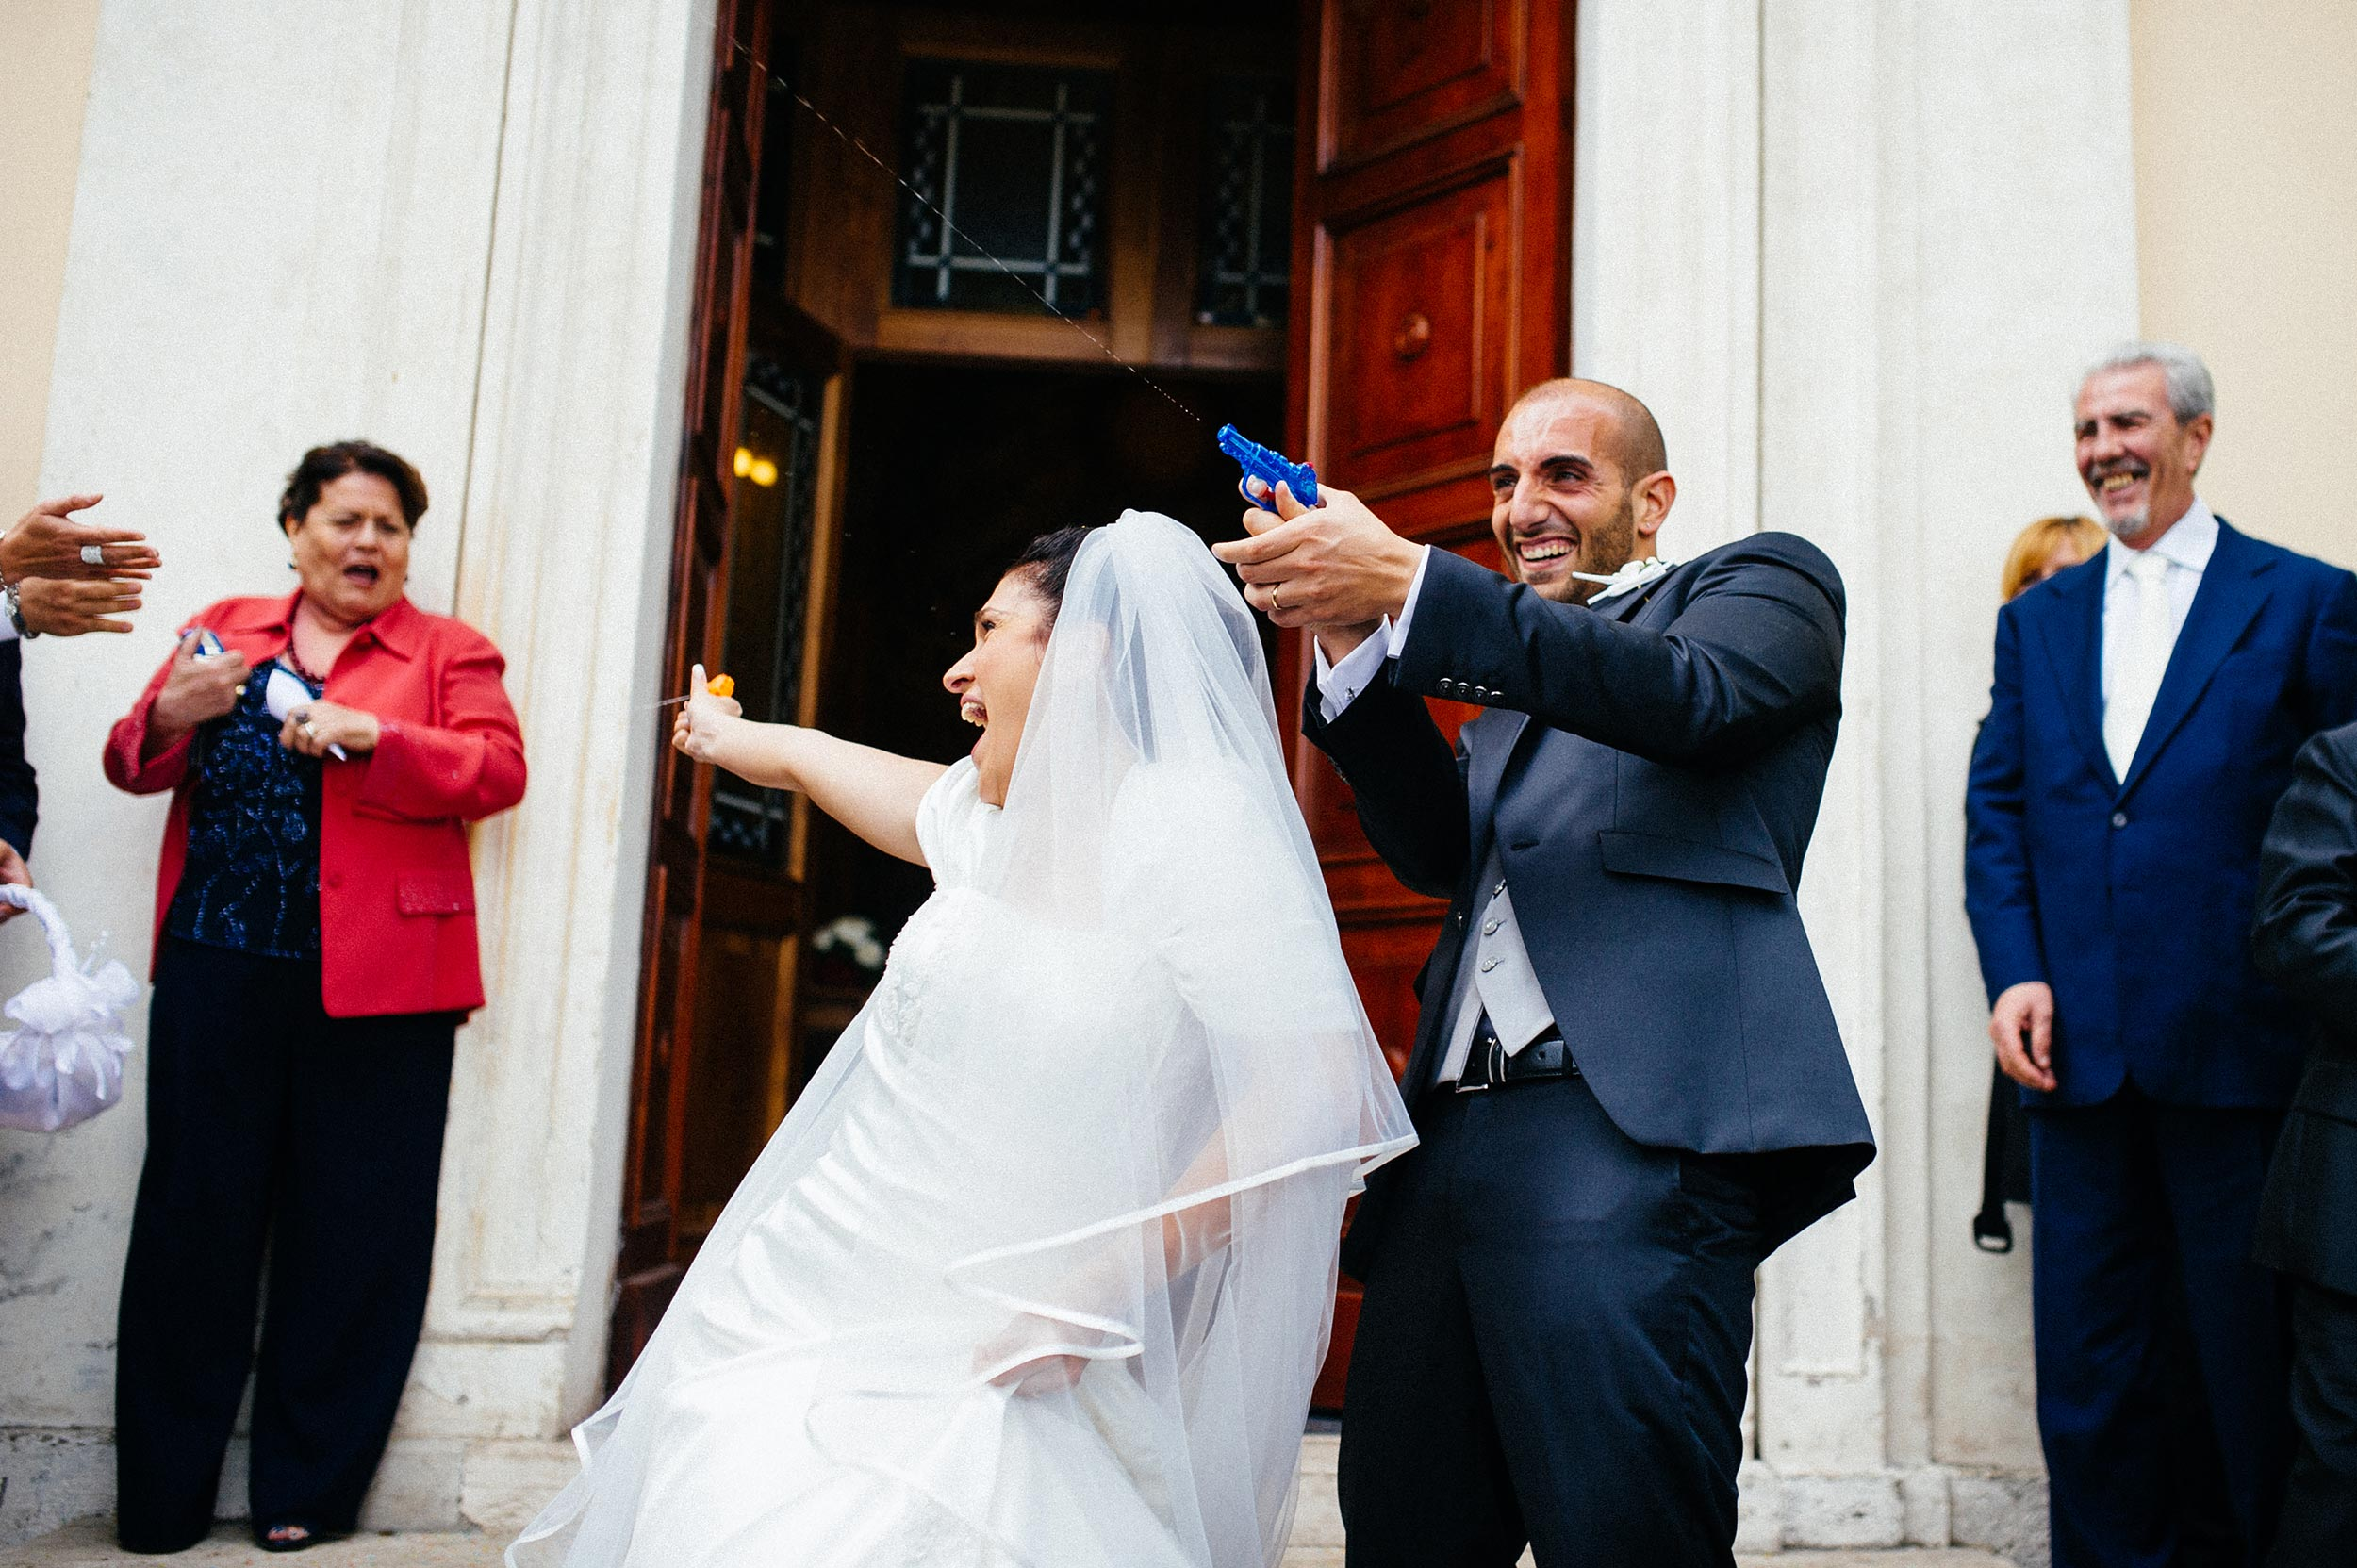 bride-and-groom-outside-the-church-shoot-guests-with-water-guns.jpg